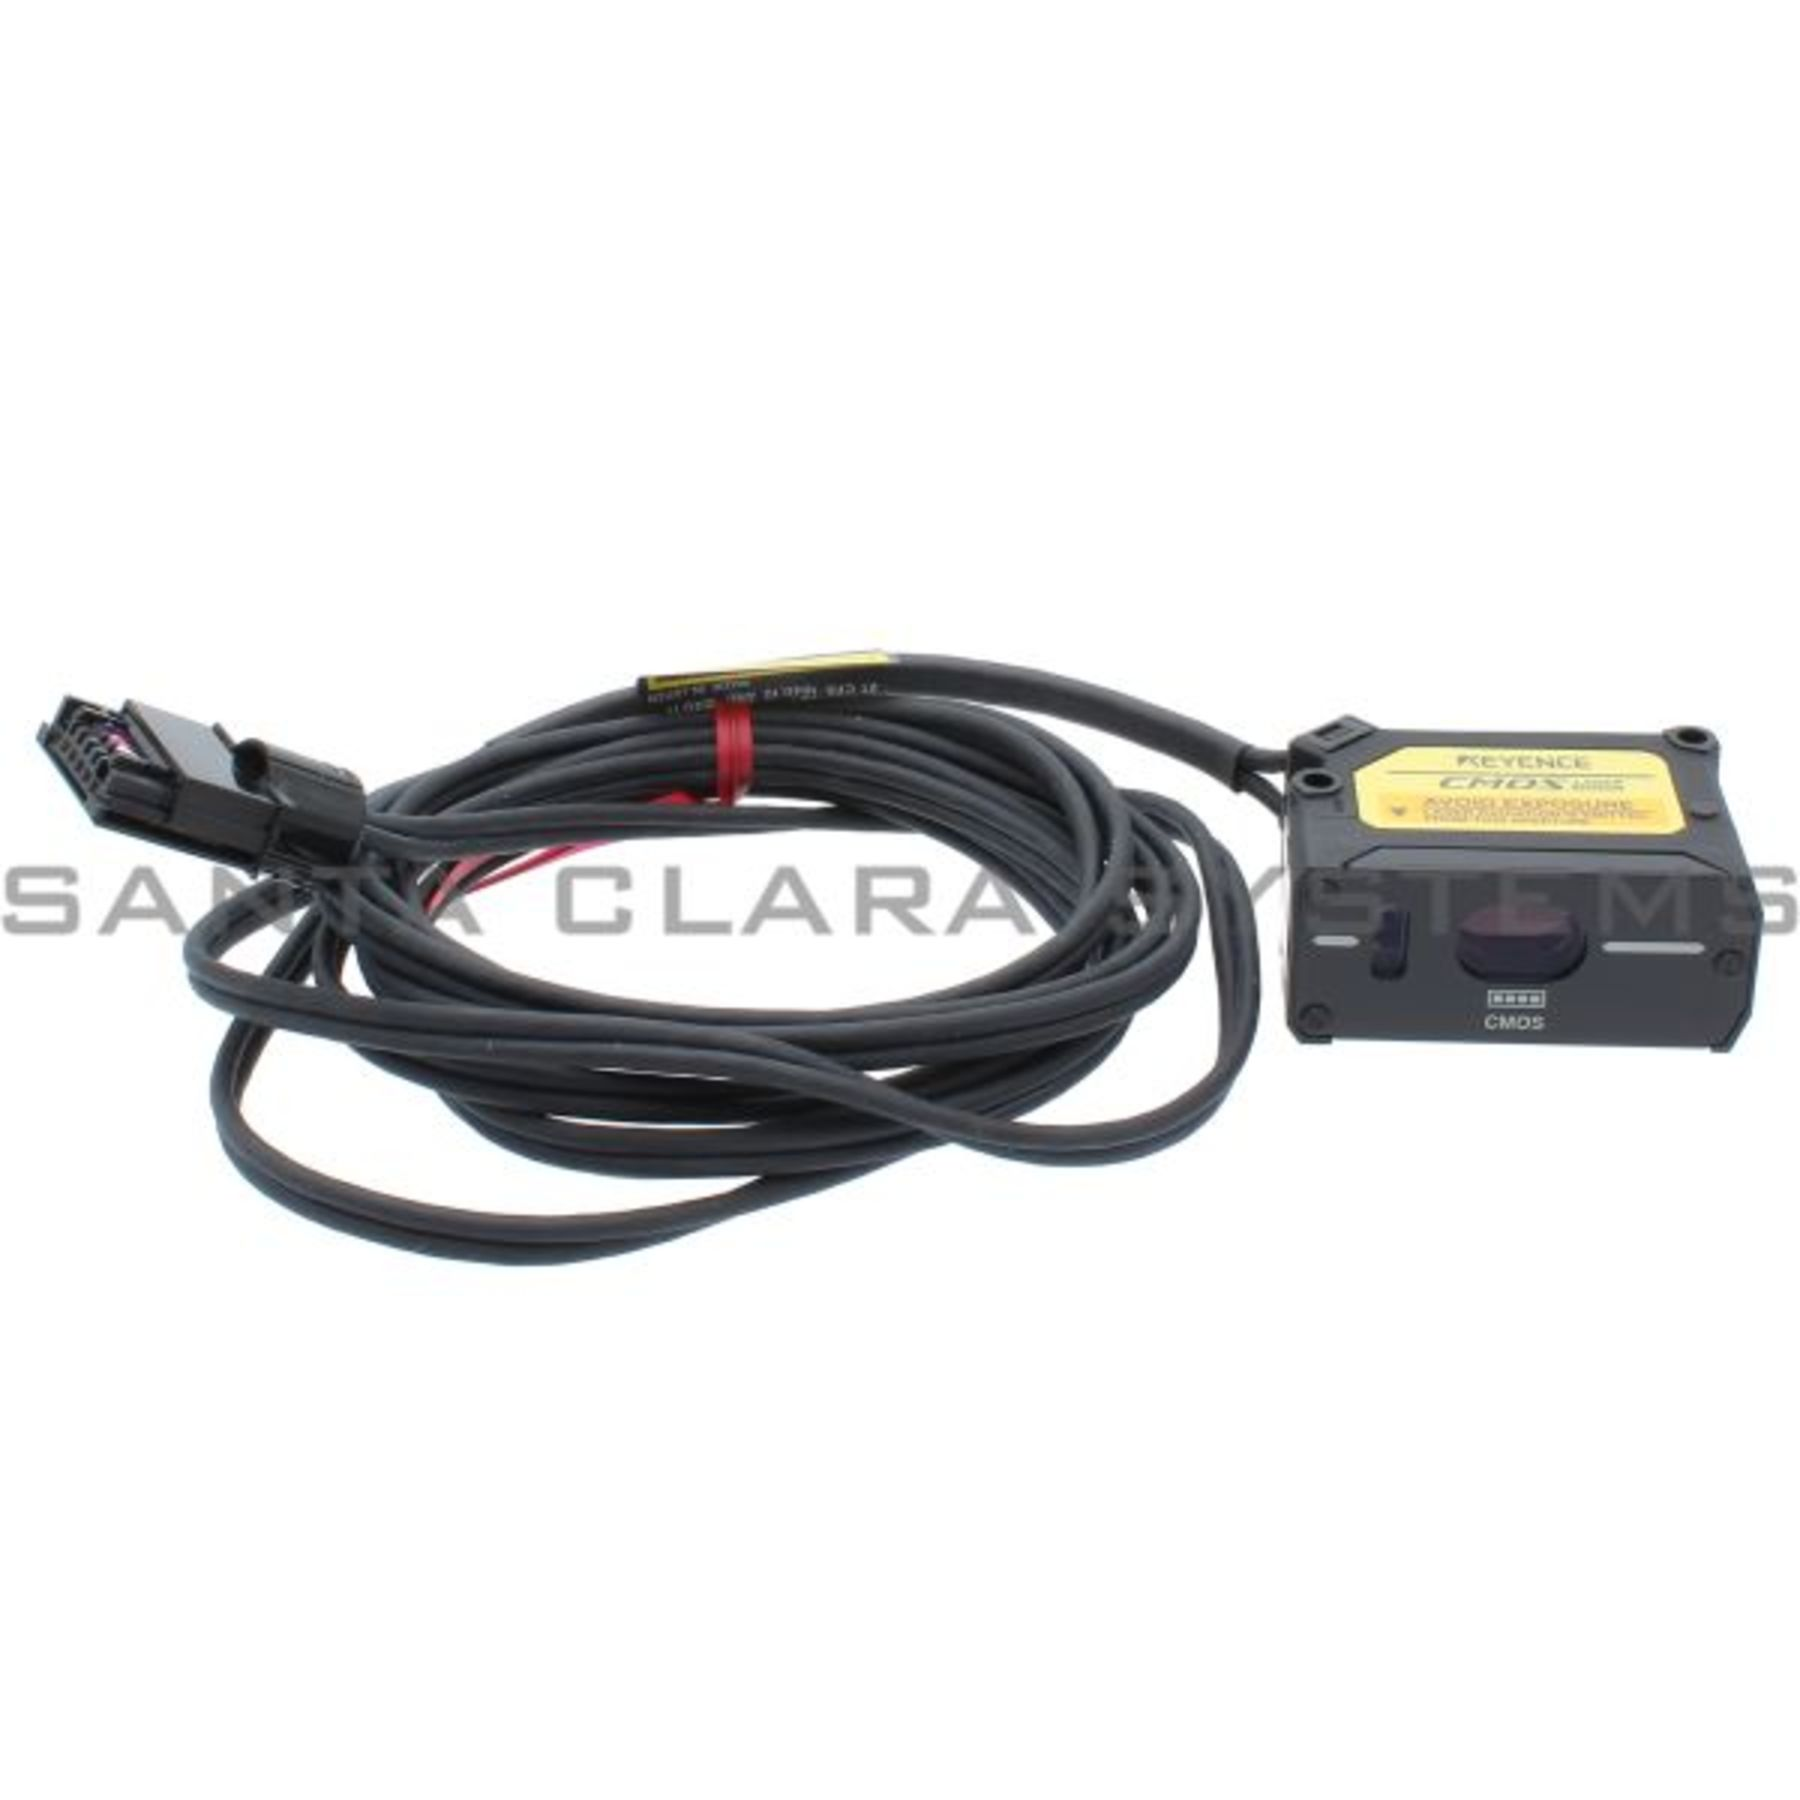 GV-H45 Laser Sensor Head In stock and ready to ship - Santa Clara